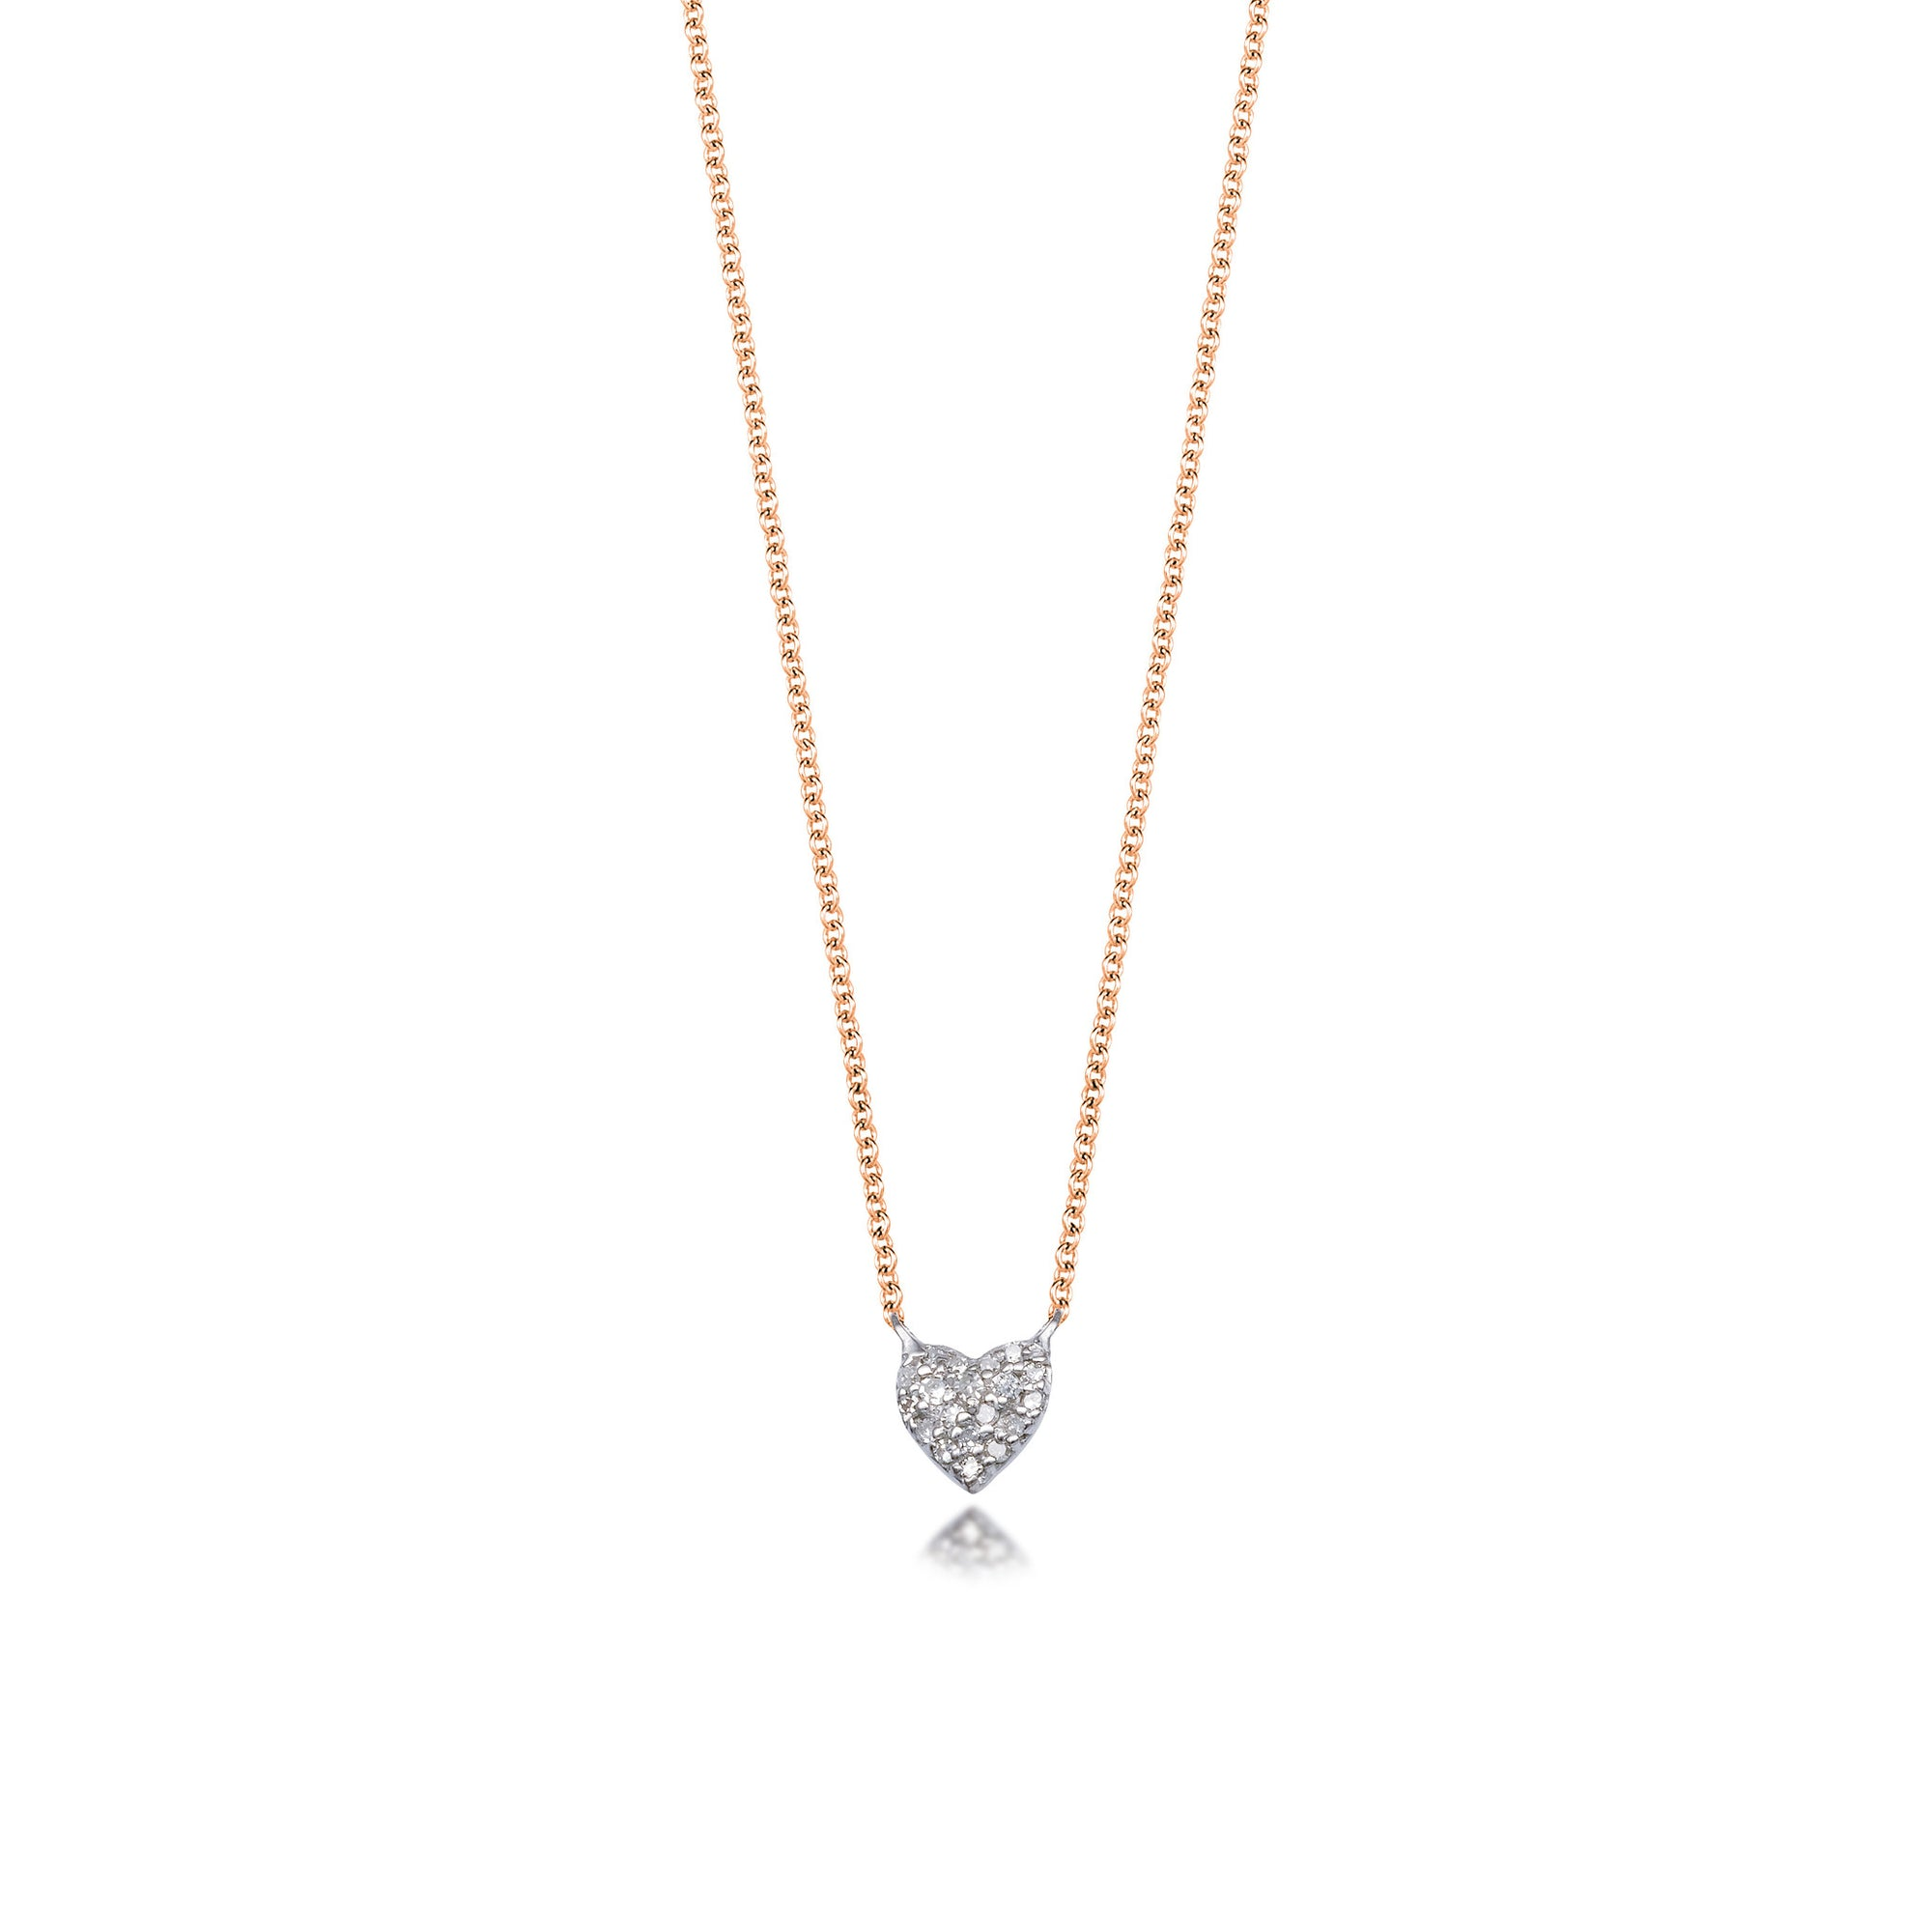 3c9bade0db079 Rose gold and sterling silver diamond heart pendant necklace